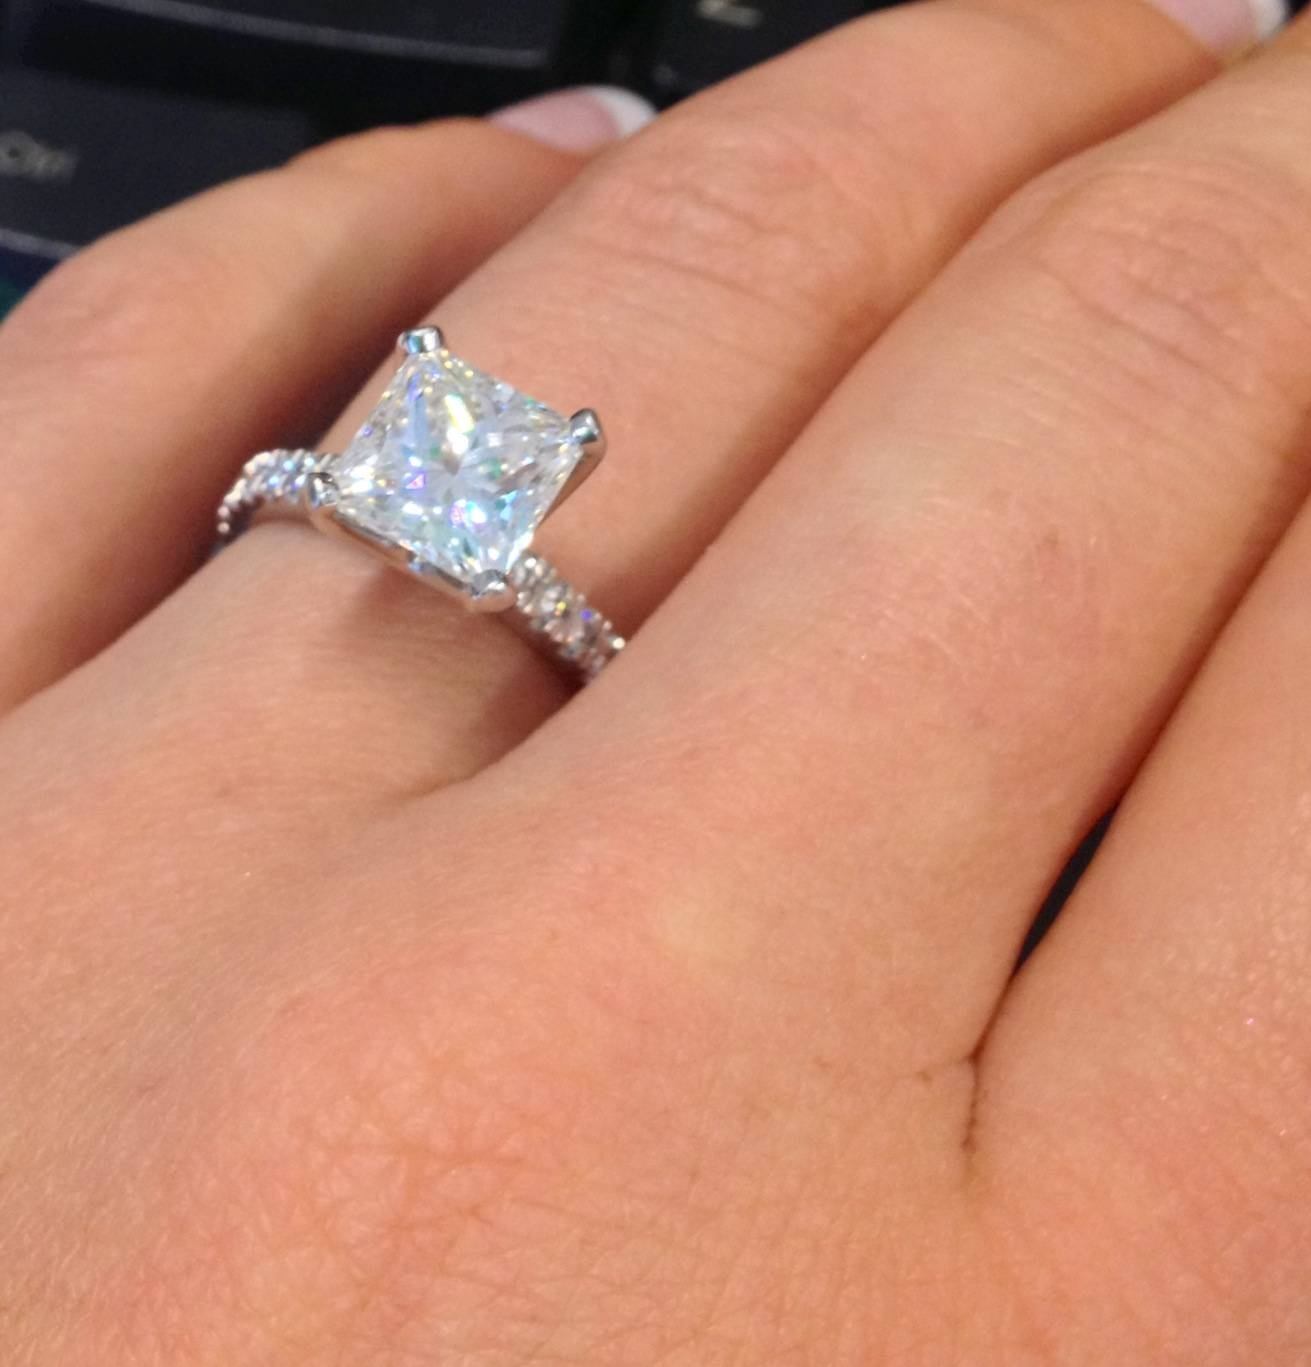 Engagement Rings : Wonderful Engagement Rings Diamond Band My 1 5 With Regard To Wedding Rings With Diamond Band (Gallery 13 of 15)